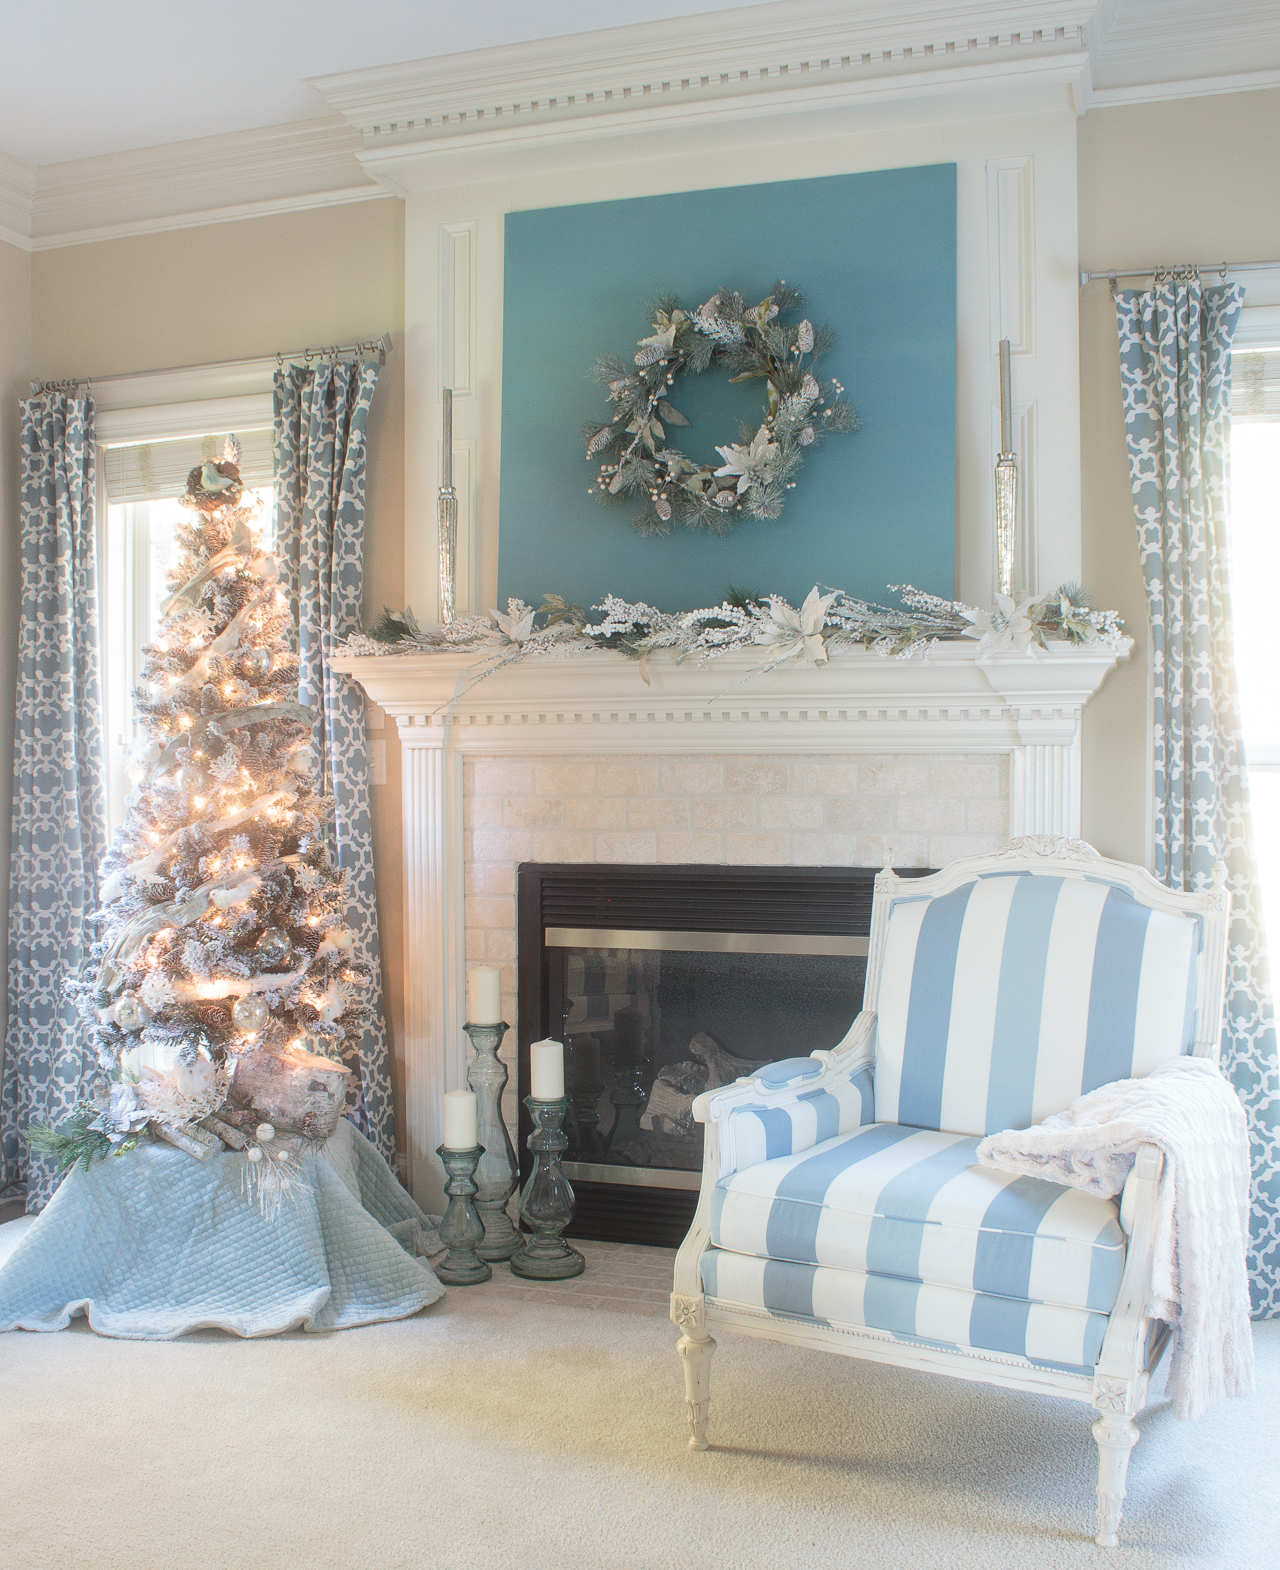 Stunning Blue And White Christmas Decorations Featuring A Flocked Tree,  Mercury Glass,